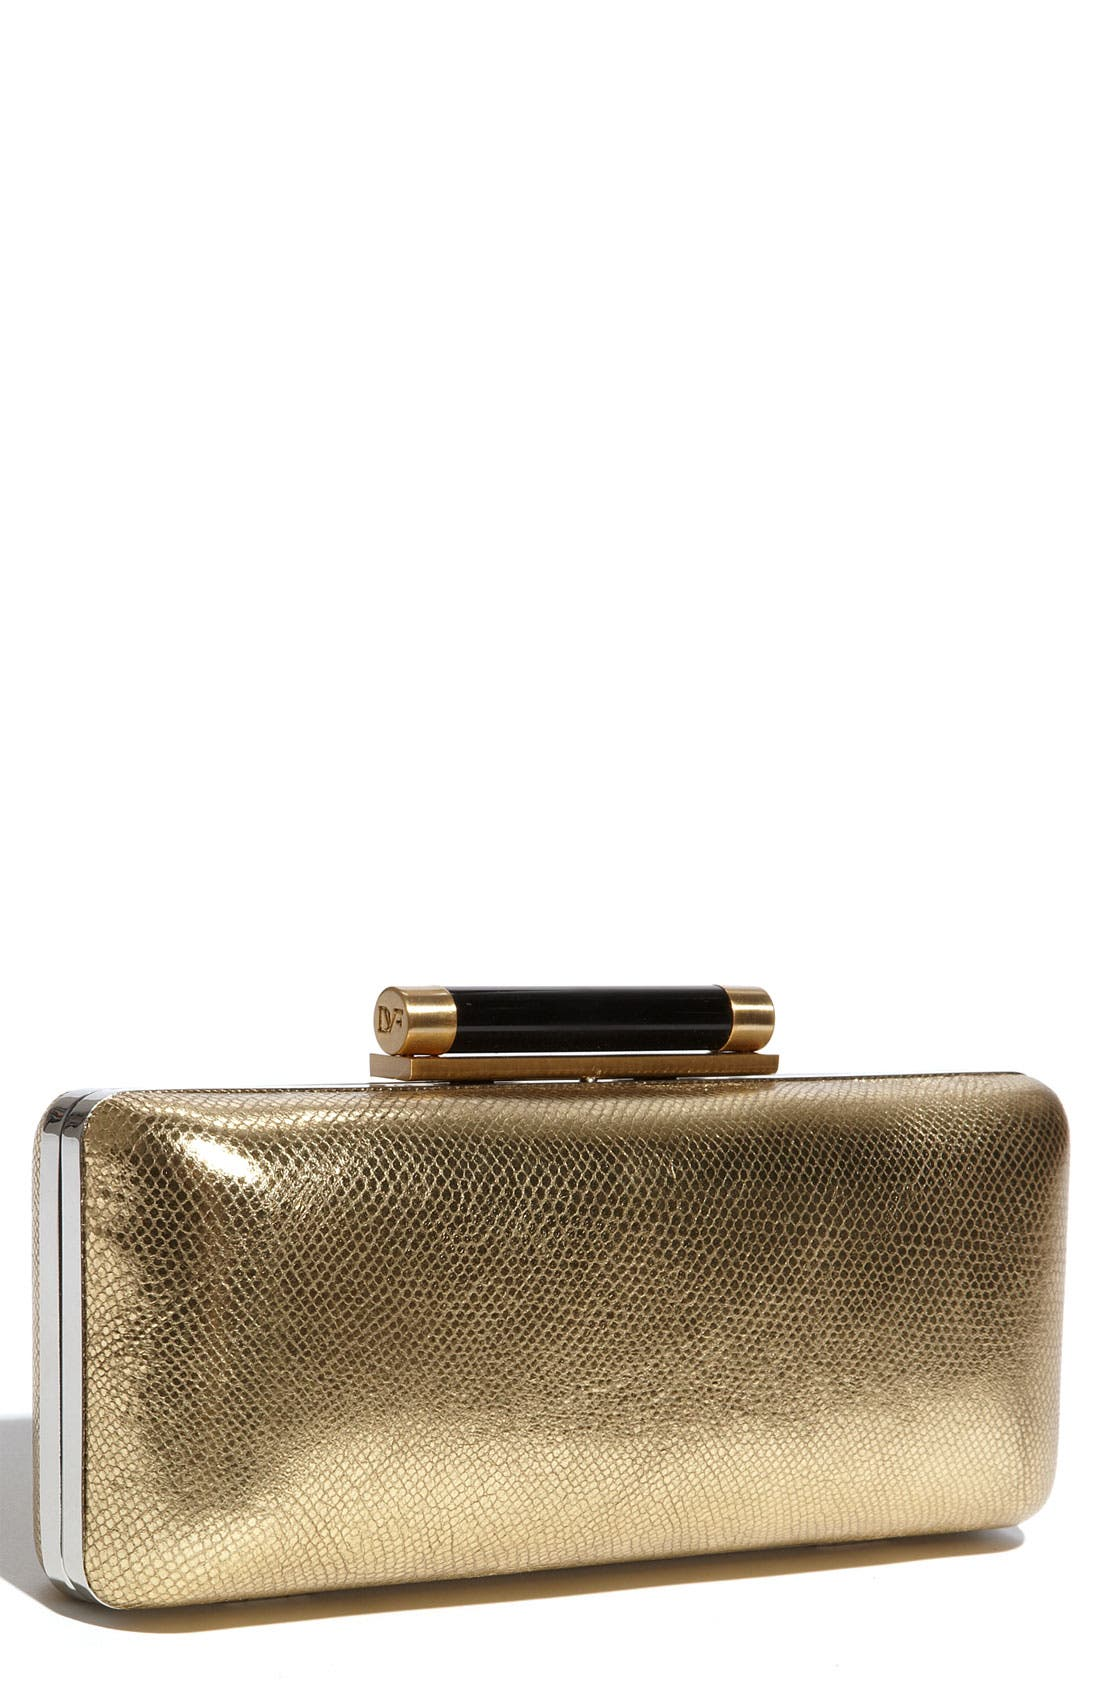 Main Image - Diane von Furstenberg 'Tonda' Metallic Leather Clutch